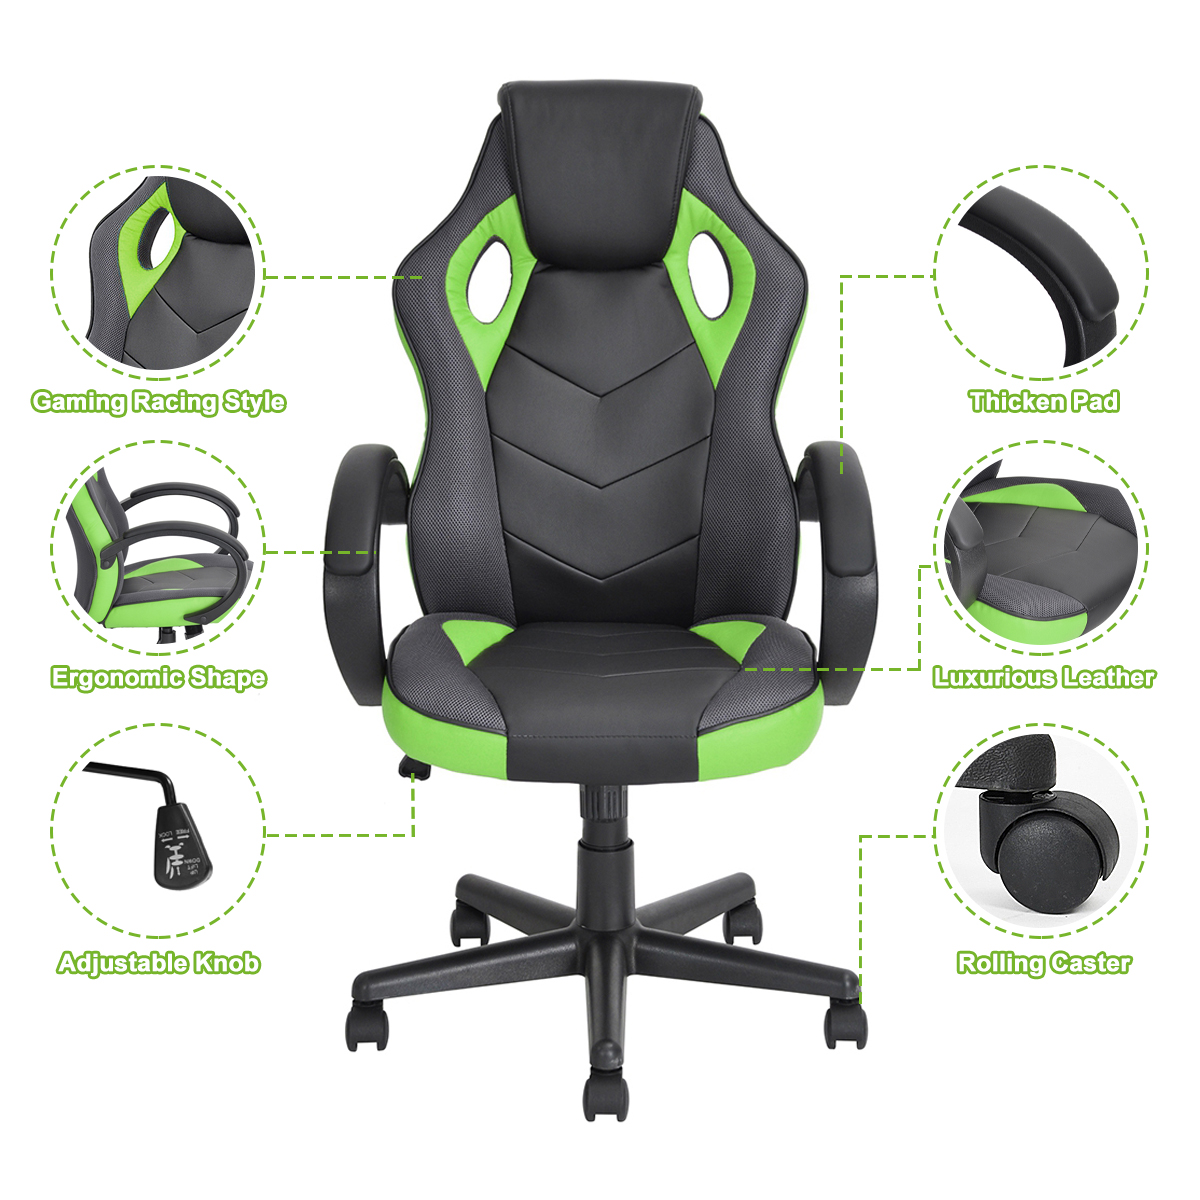 thumbnail 13 - Gaming Racing Chair Office High Back Ergonomic Computer Desk Swivel PU Leather